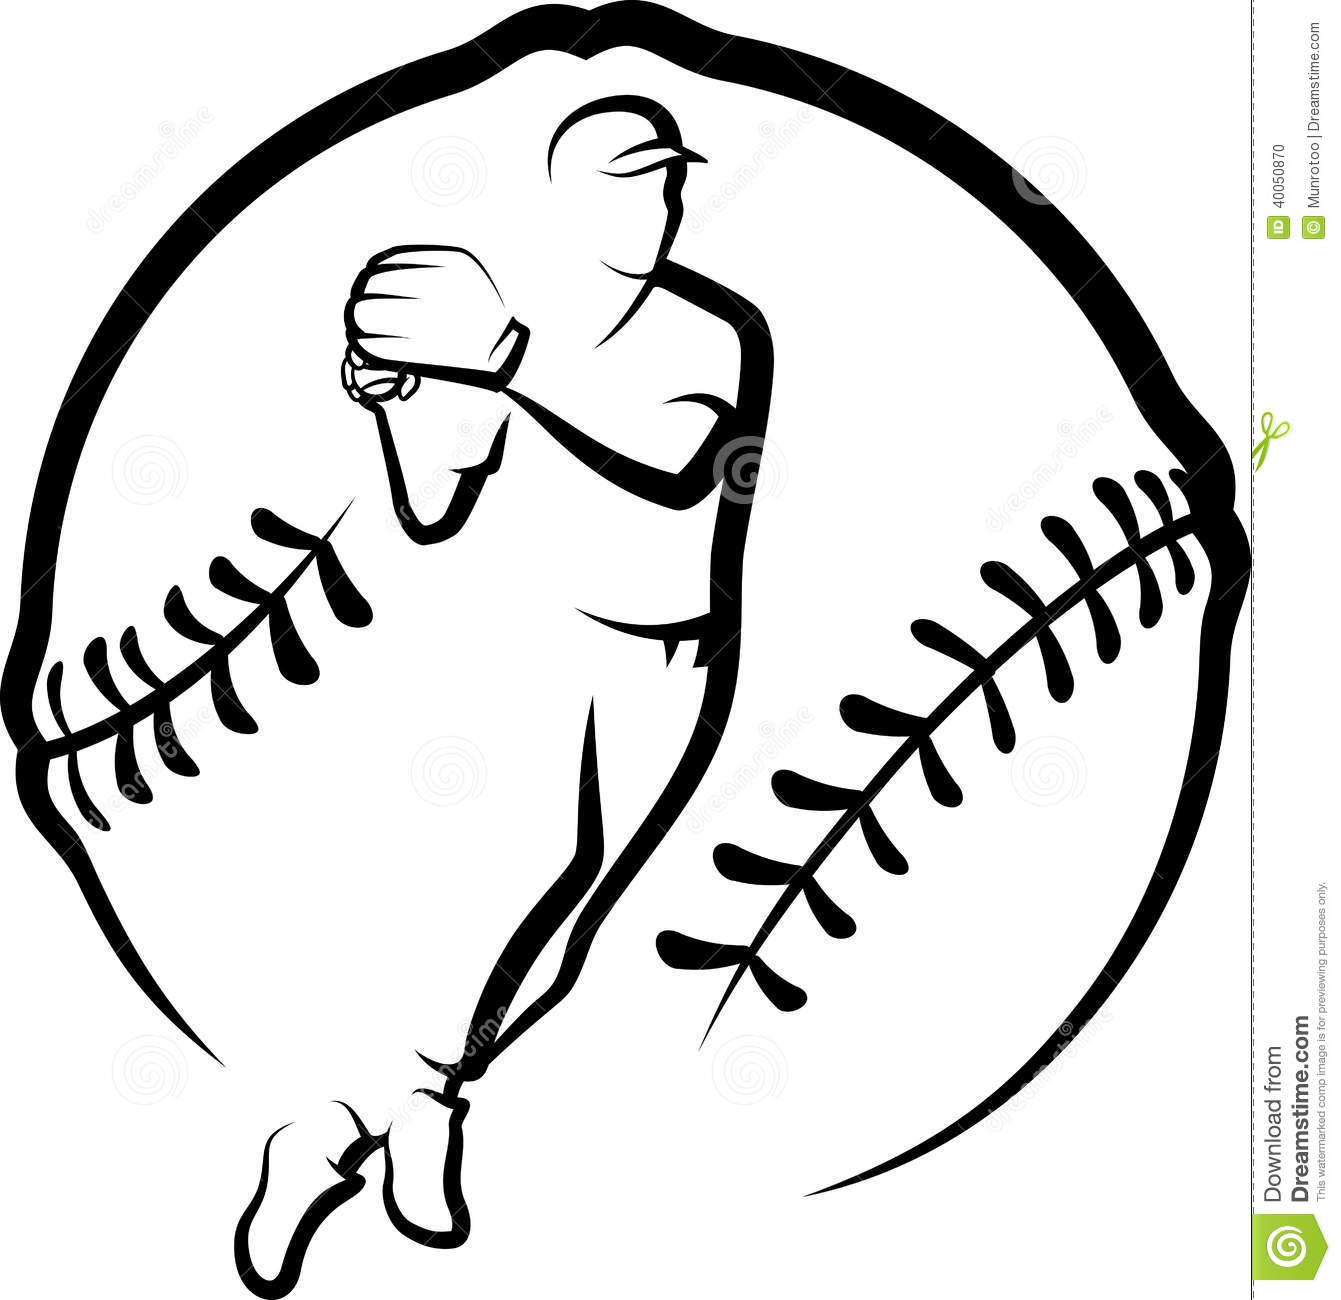 Baseball Player Throwing With Text & Stylized Ball Stock